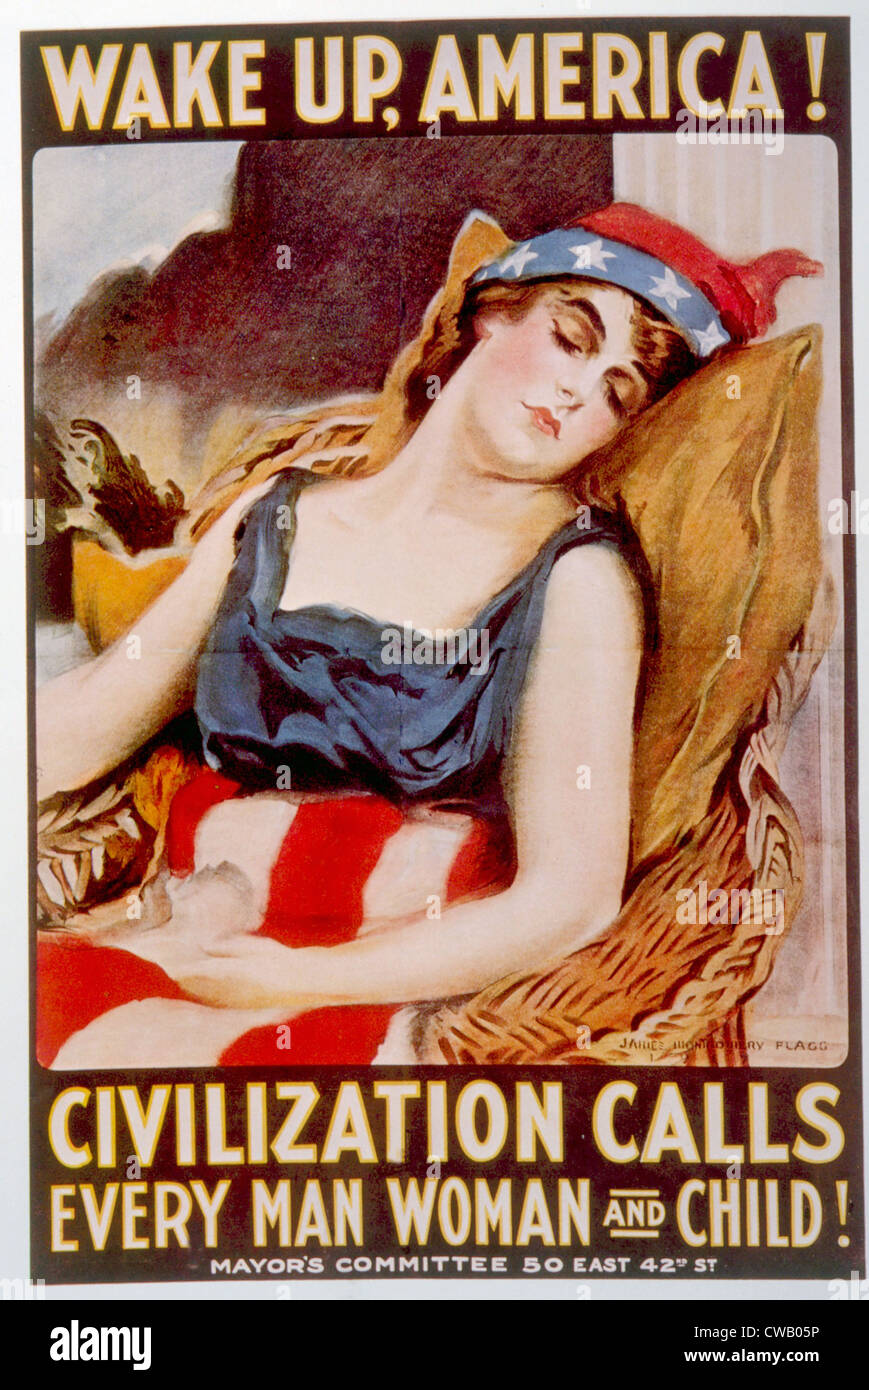 World War I American poster by James Montgomery Flagg, 1918 - Stock Image